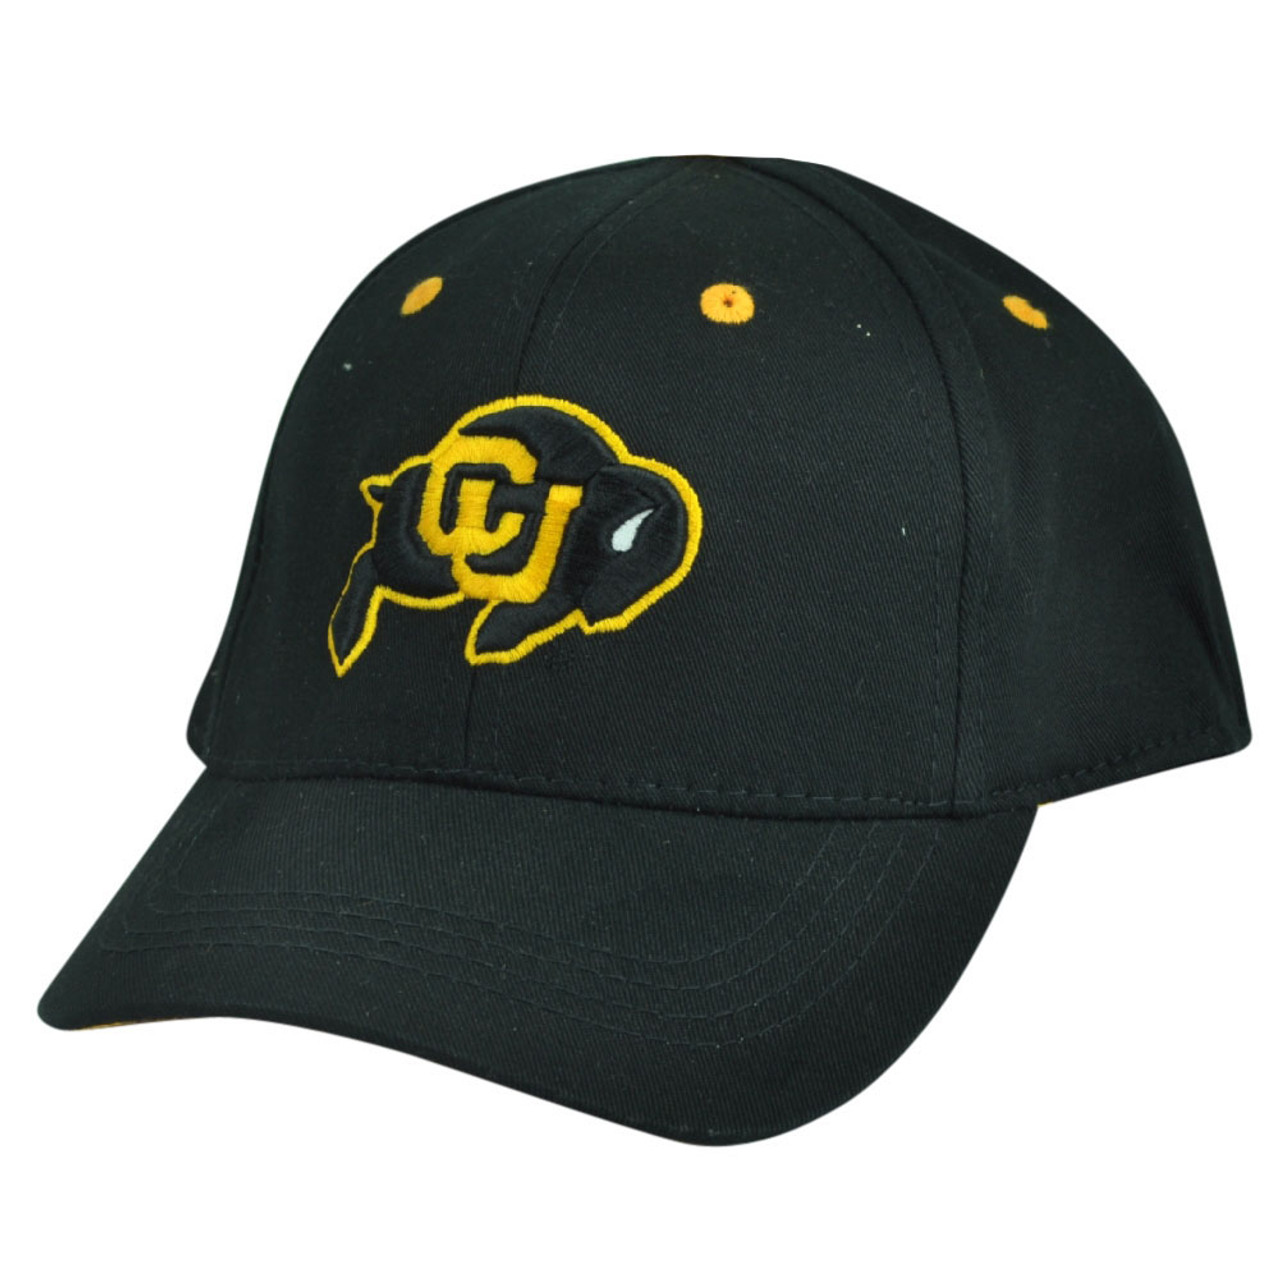 check out ed880 00d46 NCAA Colorado Buffaloes Top of the World Infant Fit Stretch Black Hat Cap  Buff - Cap Store Online.com